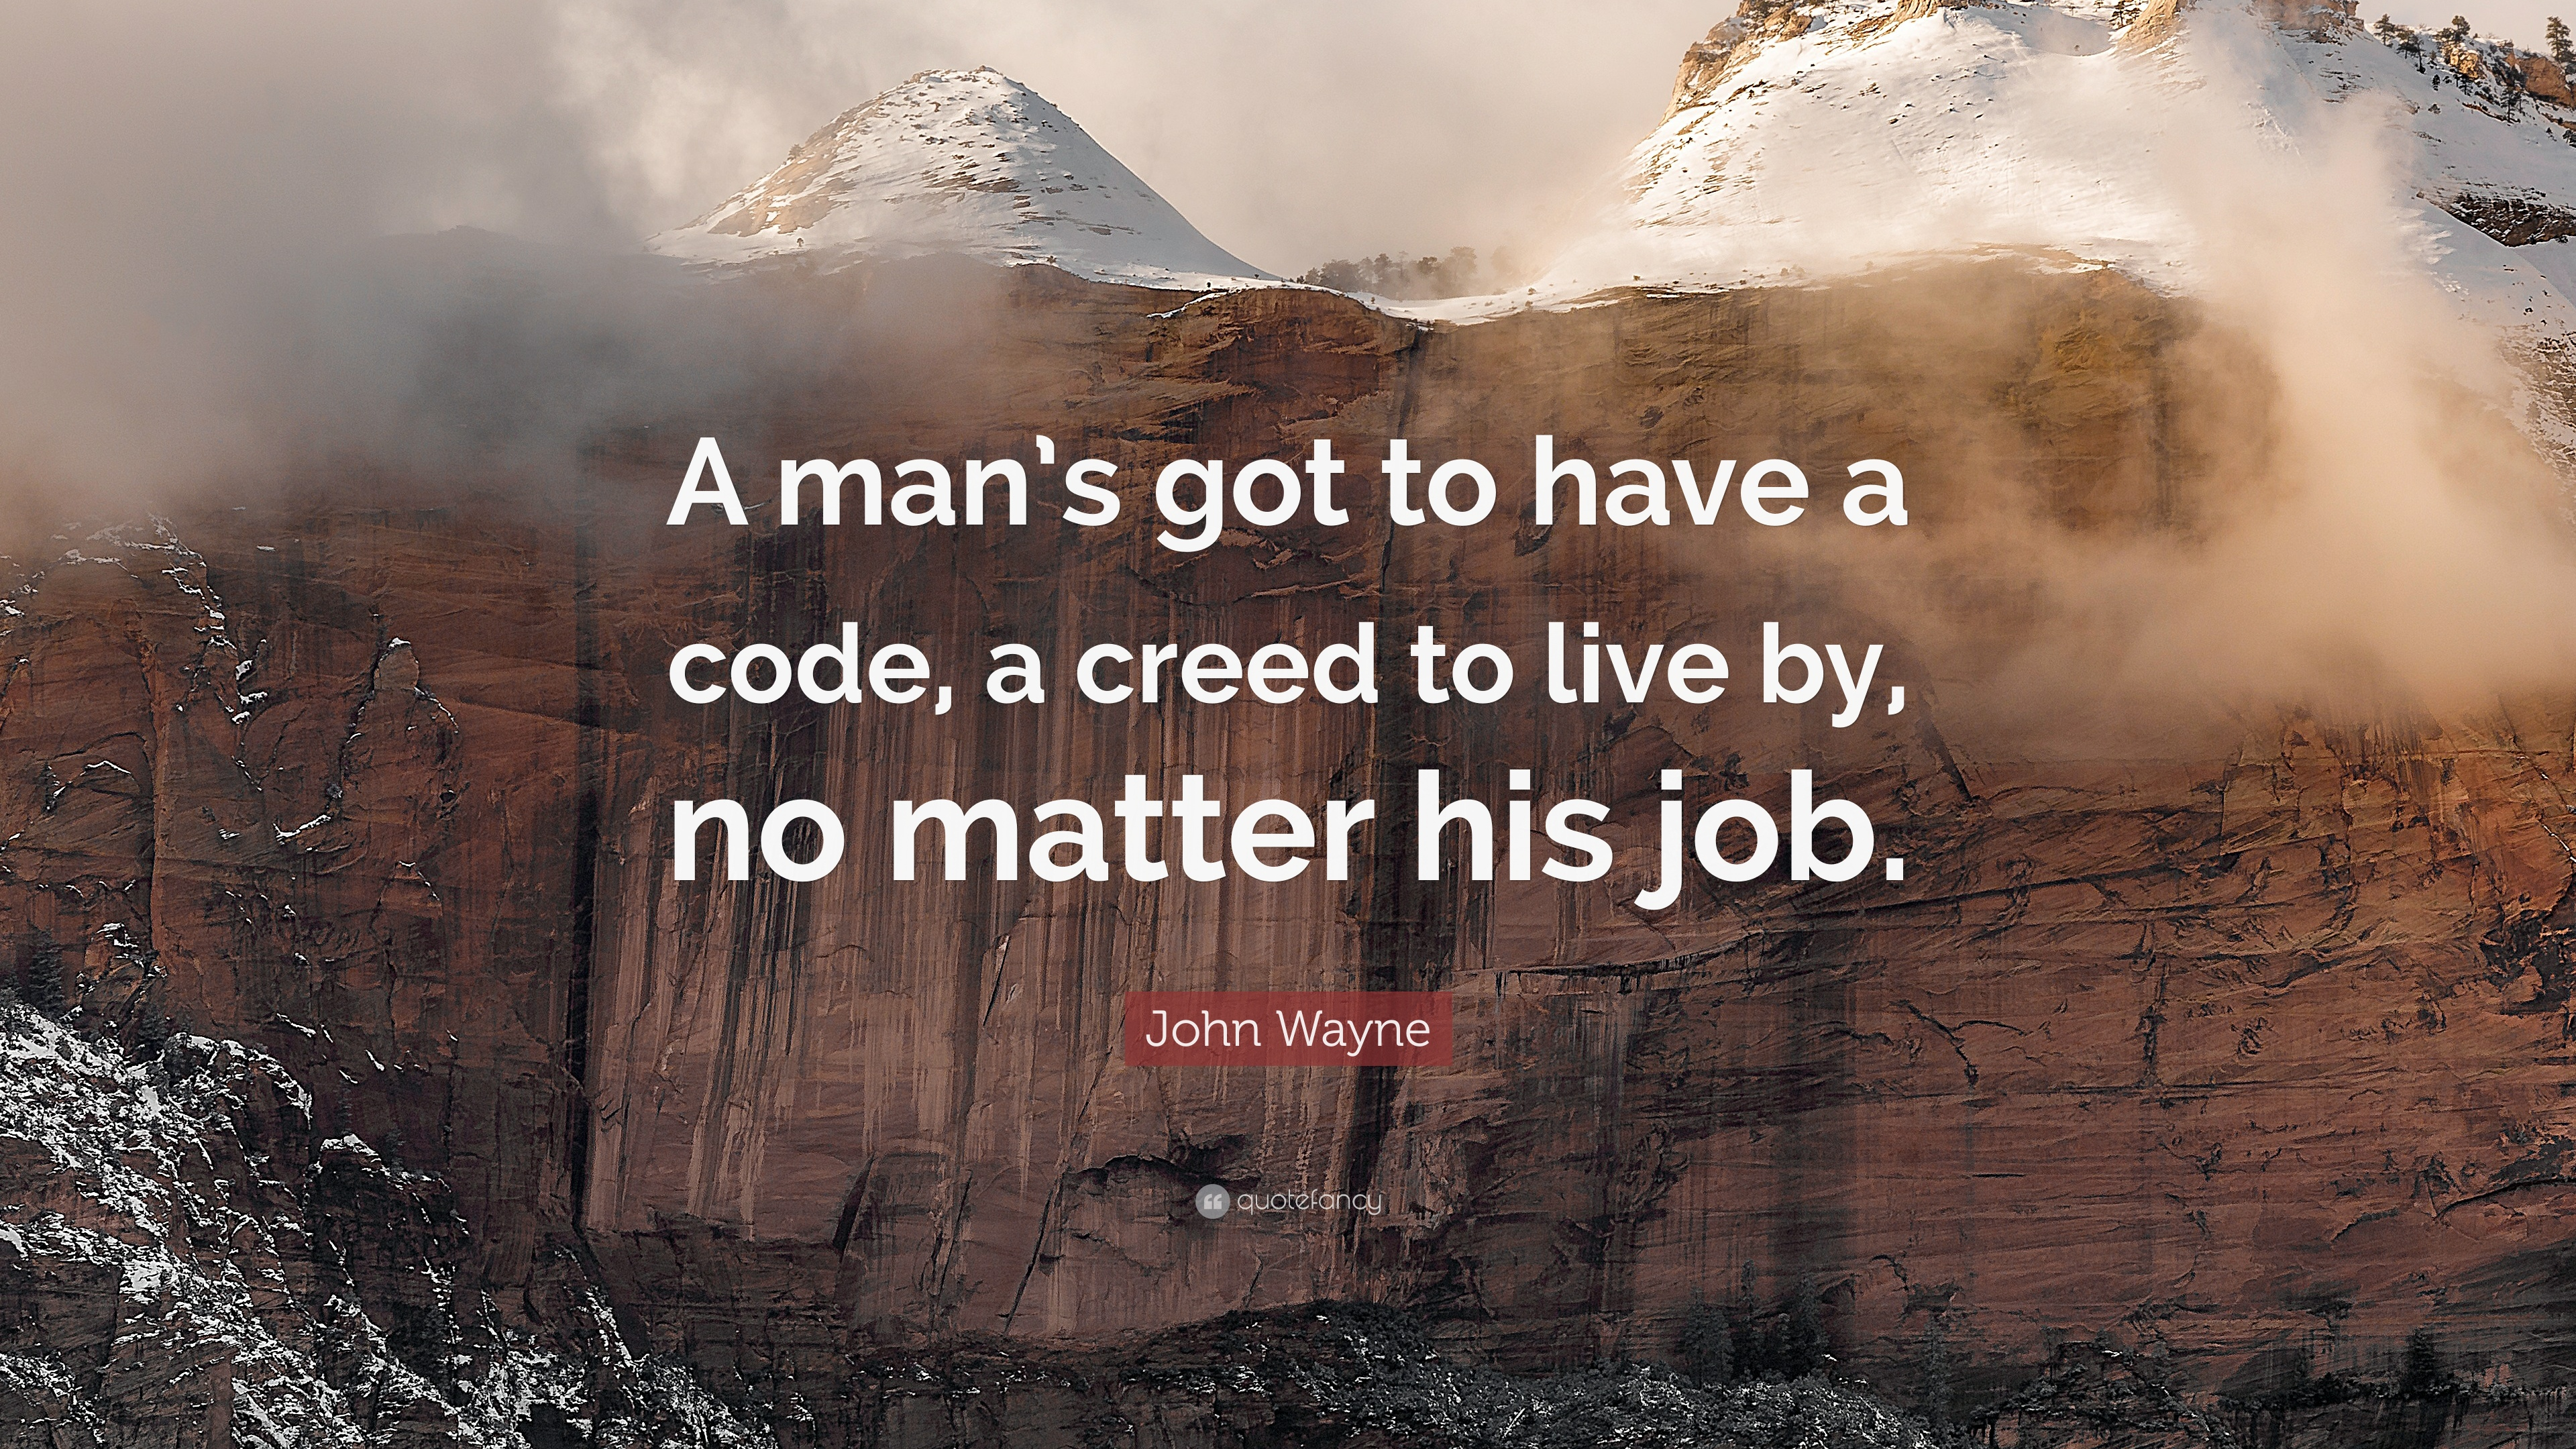 John Wayne Quote A Man S Got To Have A Code A Creed To Live By No